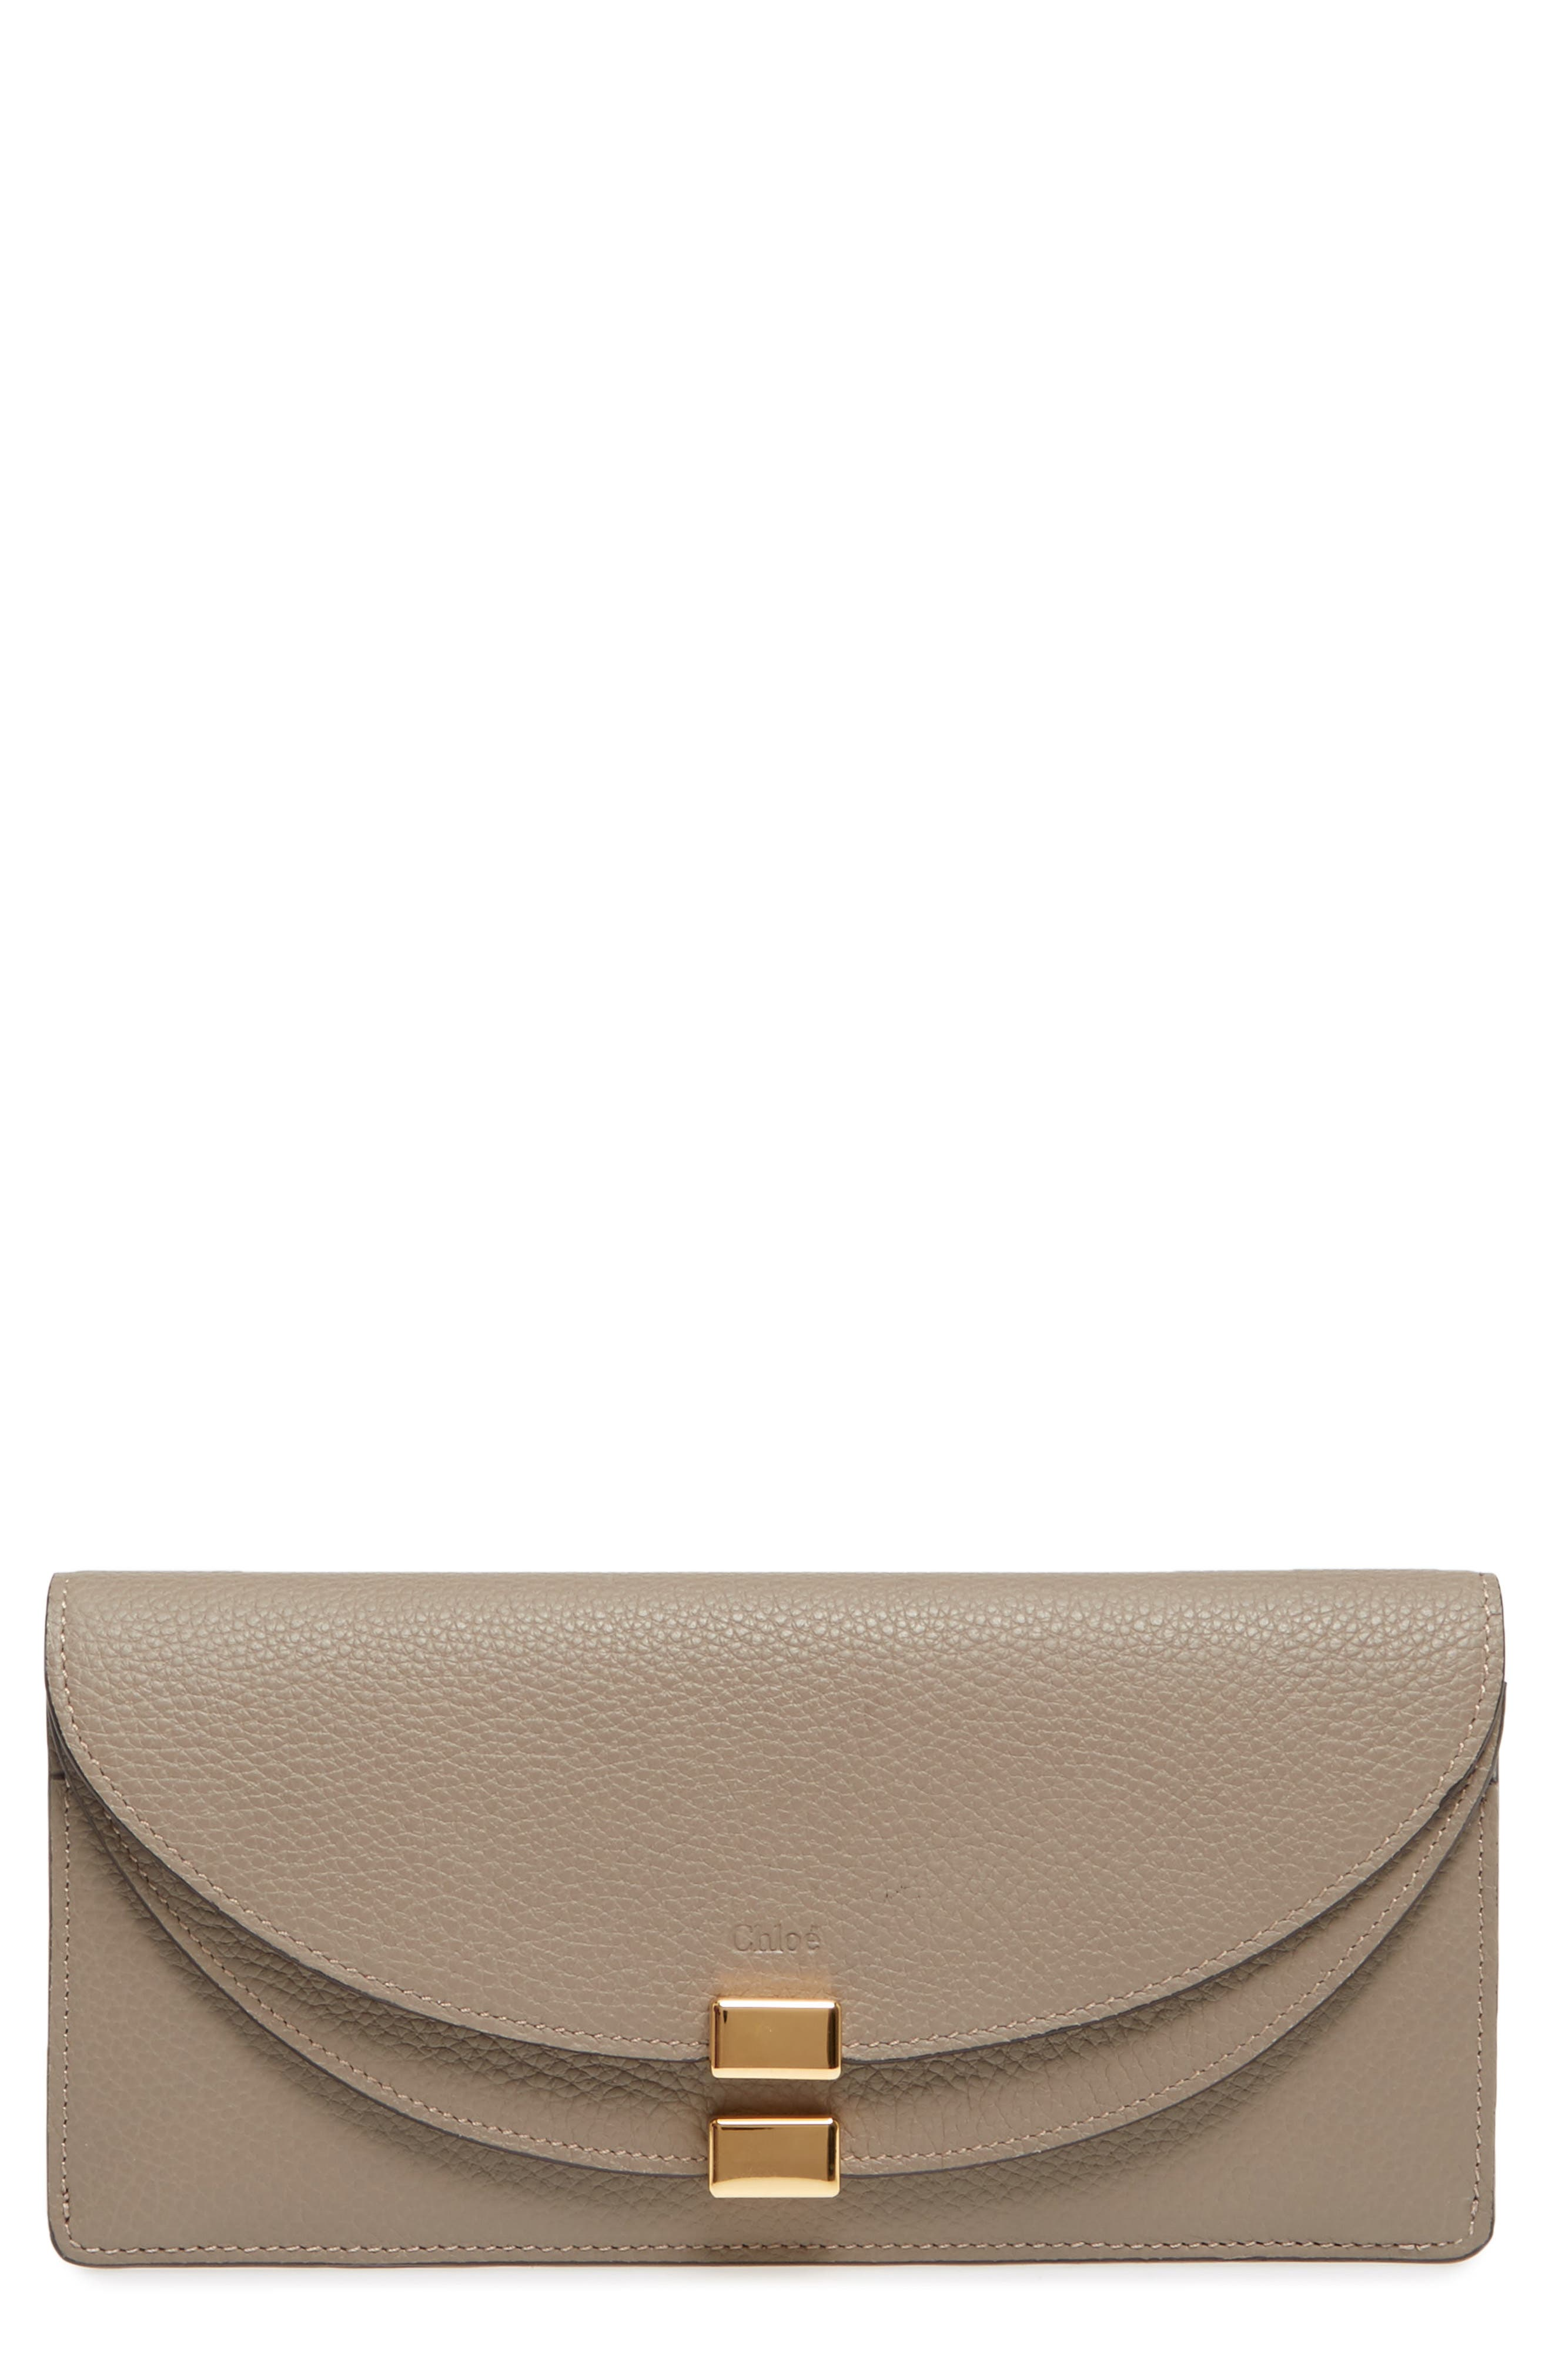 Chloé Georgia Continental Leather Wallet